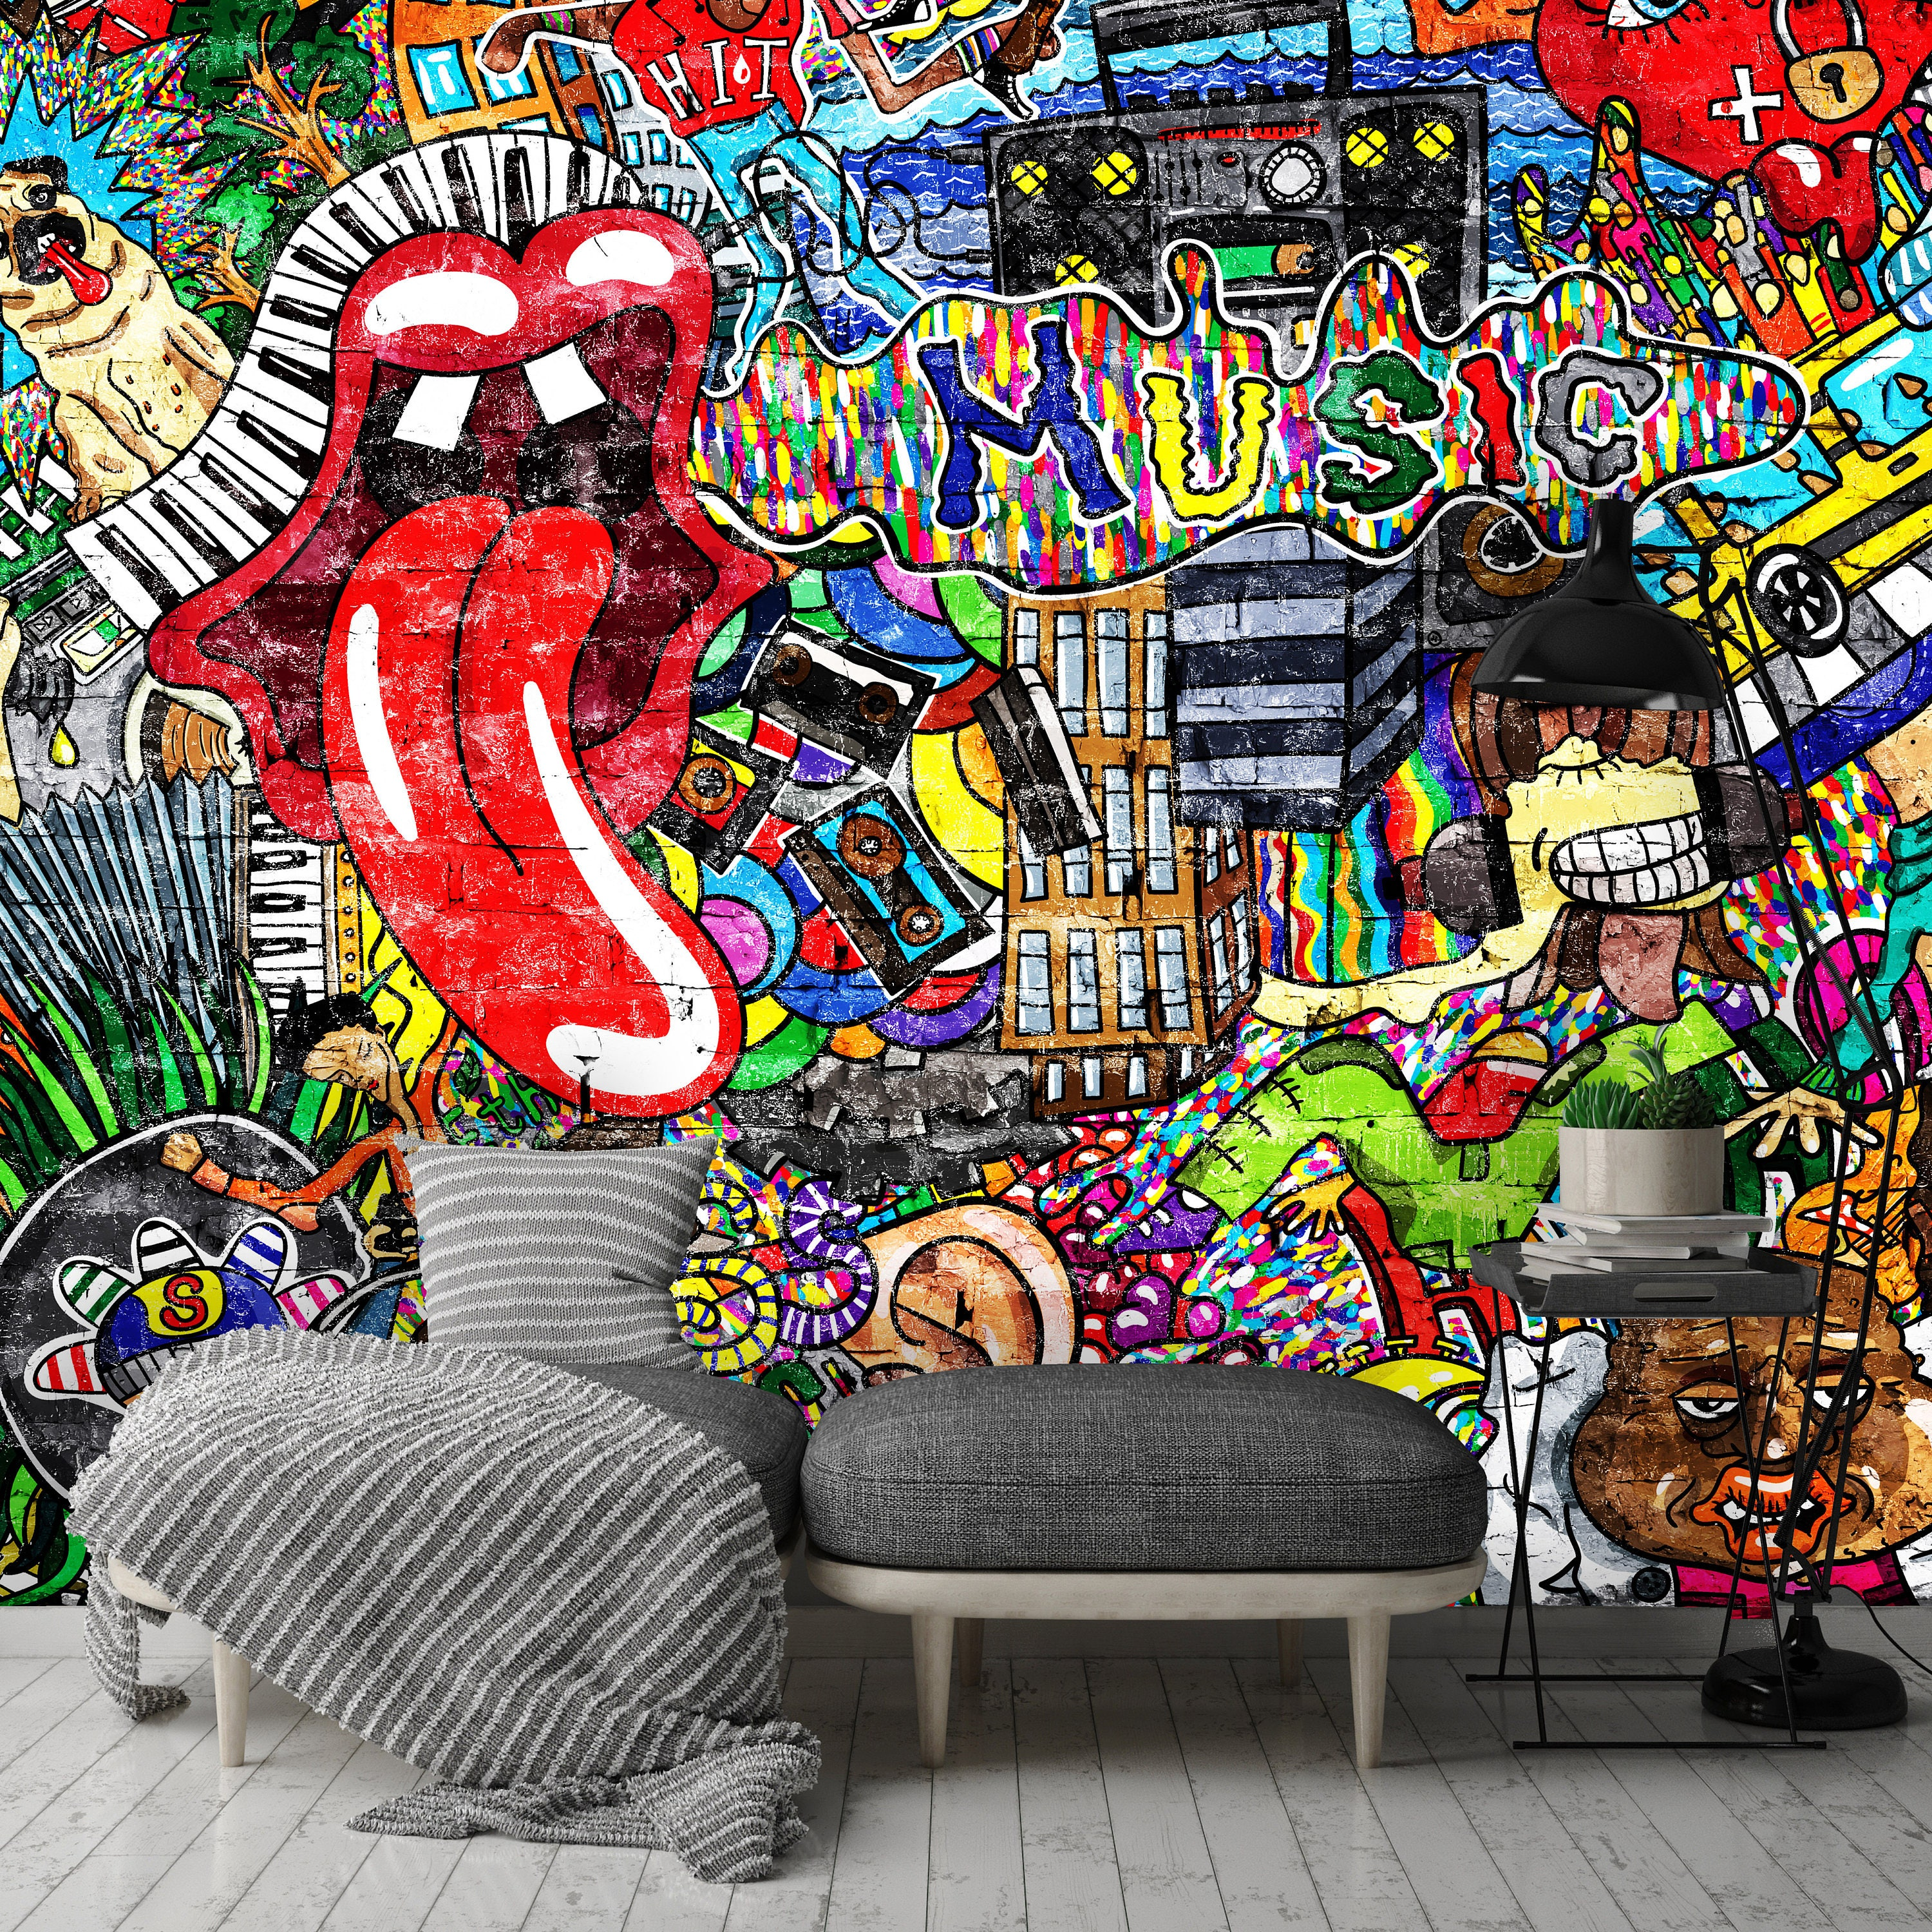 Wonderful Wallpaper Music Graffiti Art - il_fullxfull  Trends_255698.jpg?version\u003d0